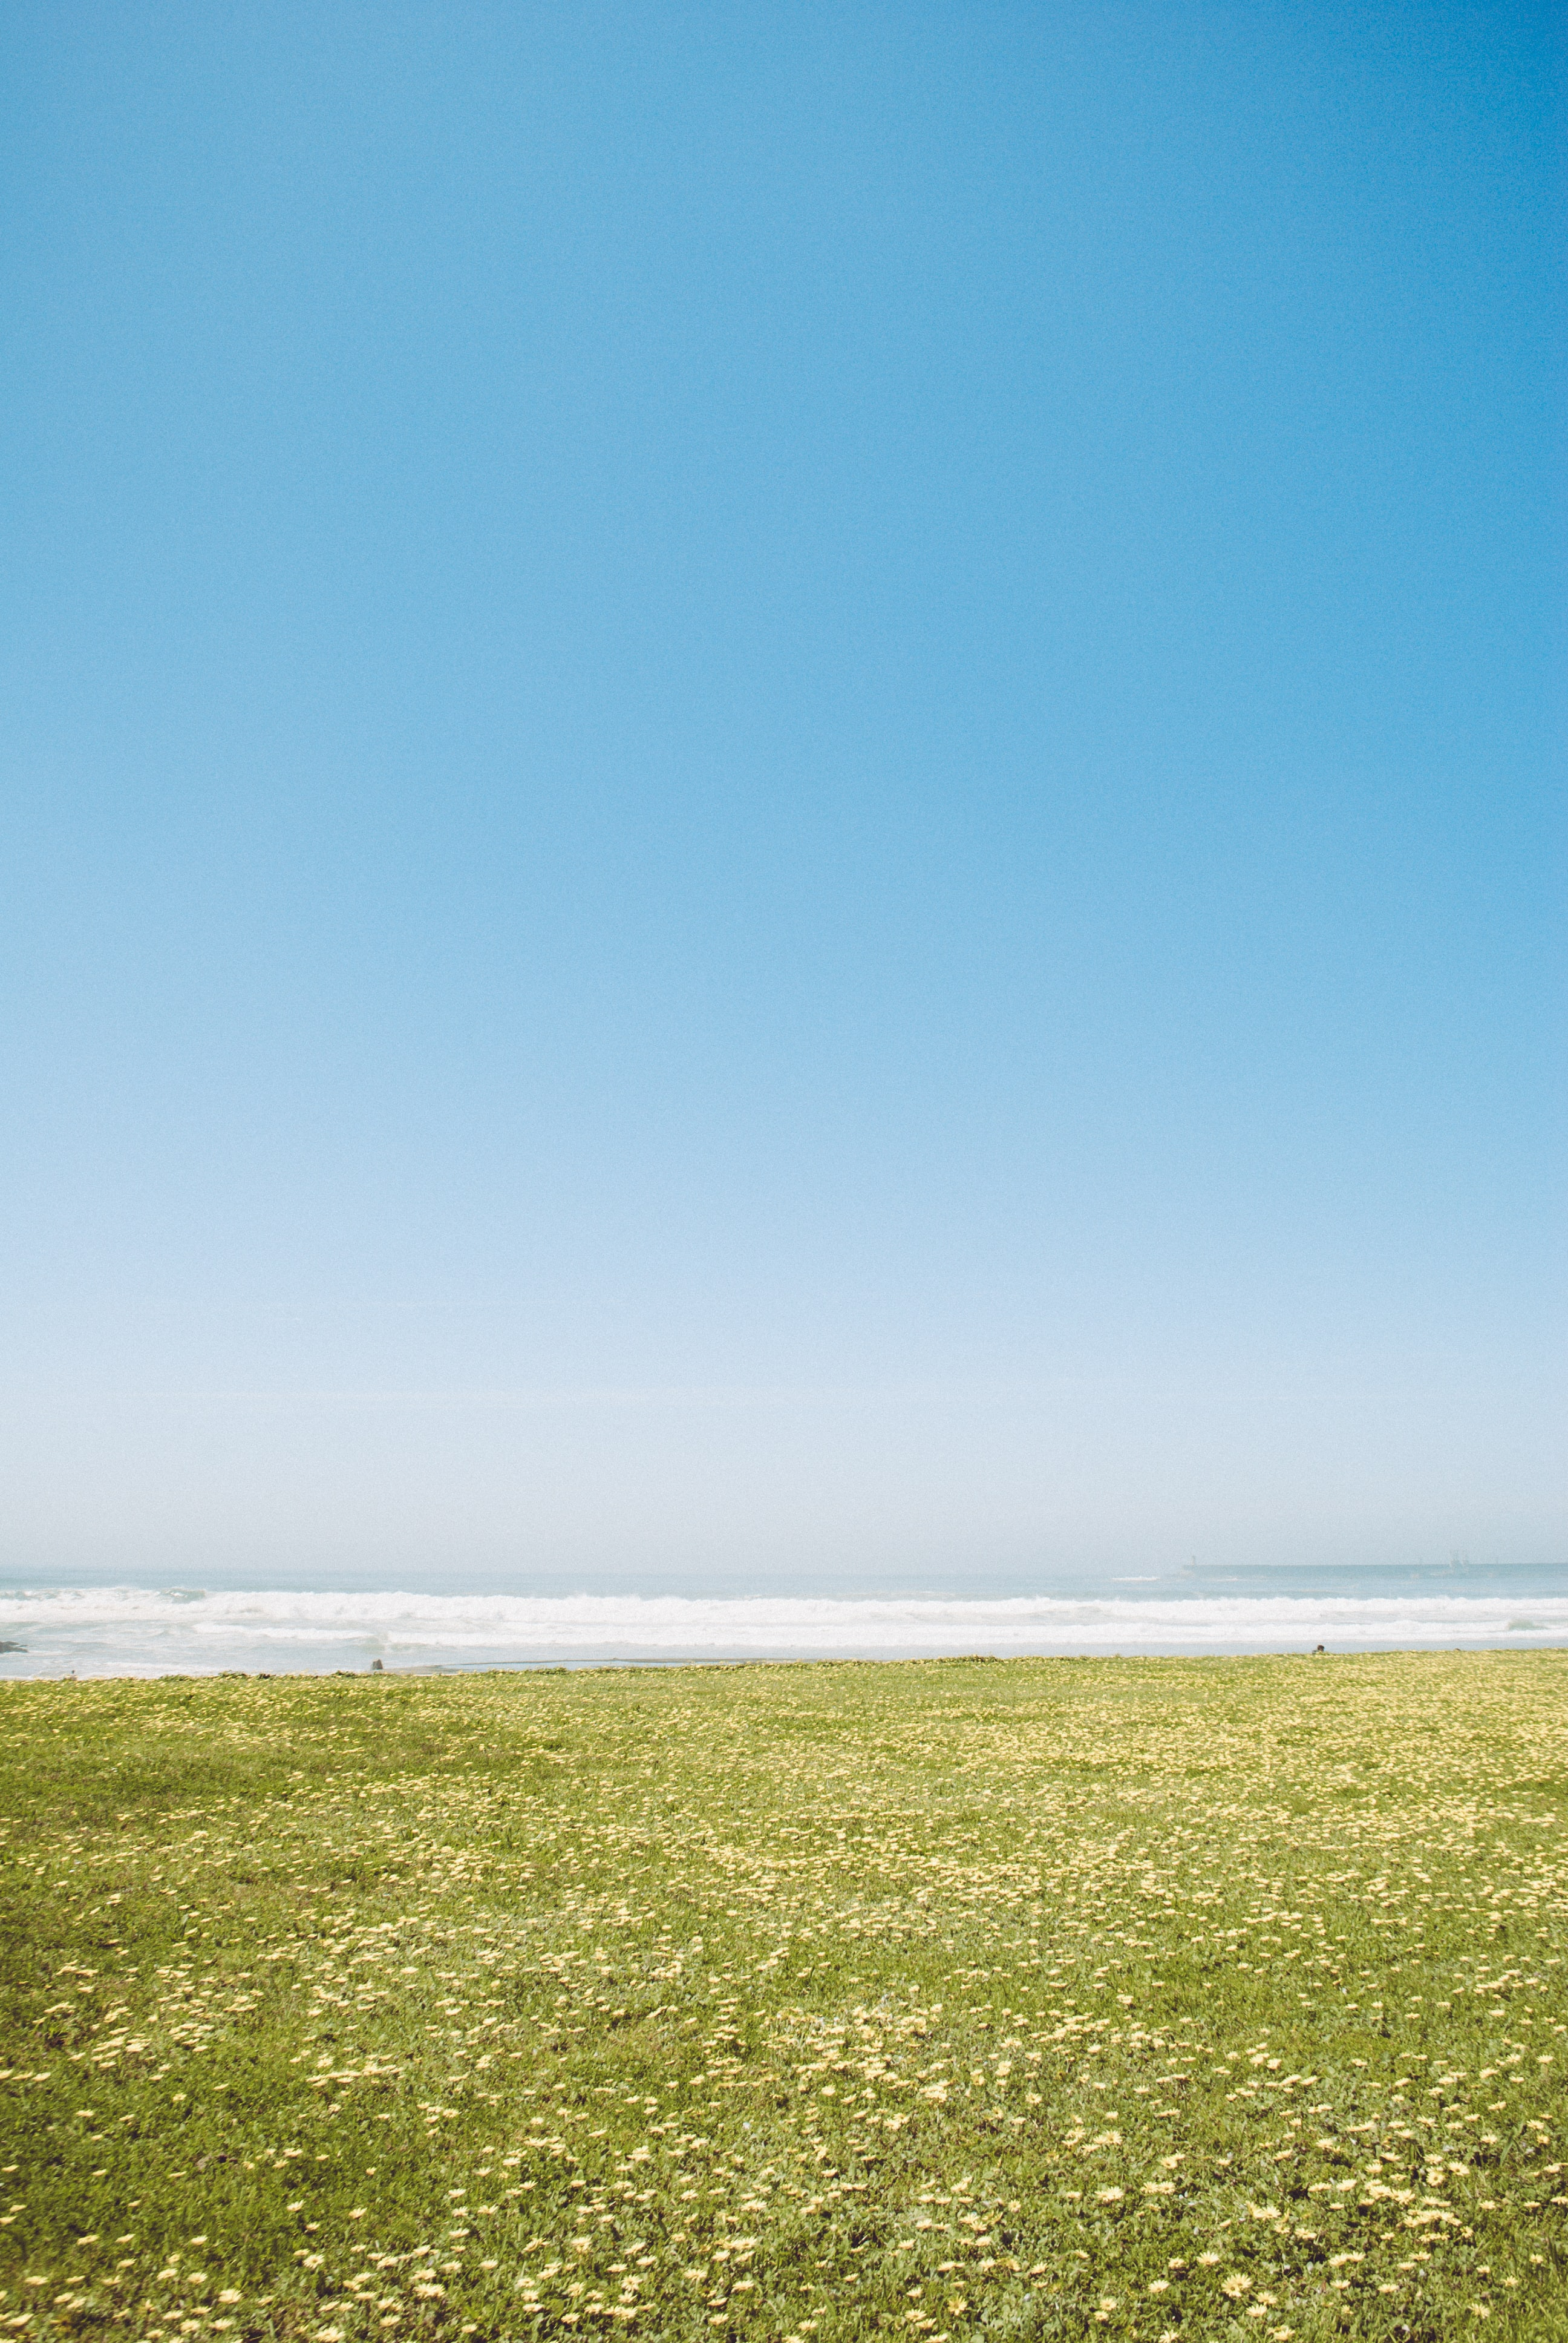 panoramic photography of grass field near body of water